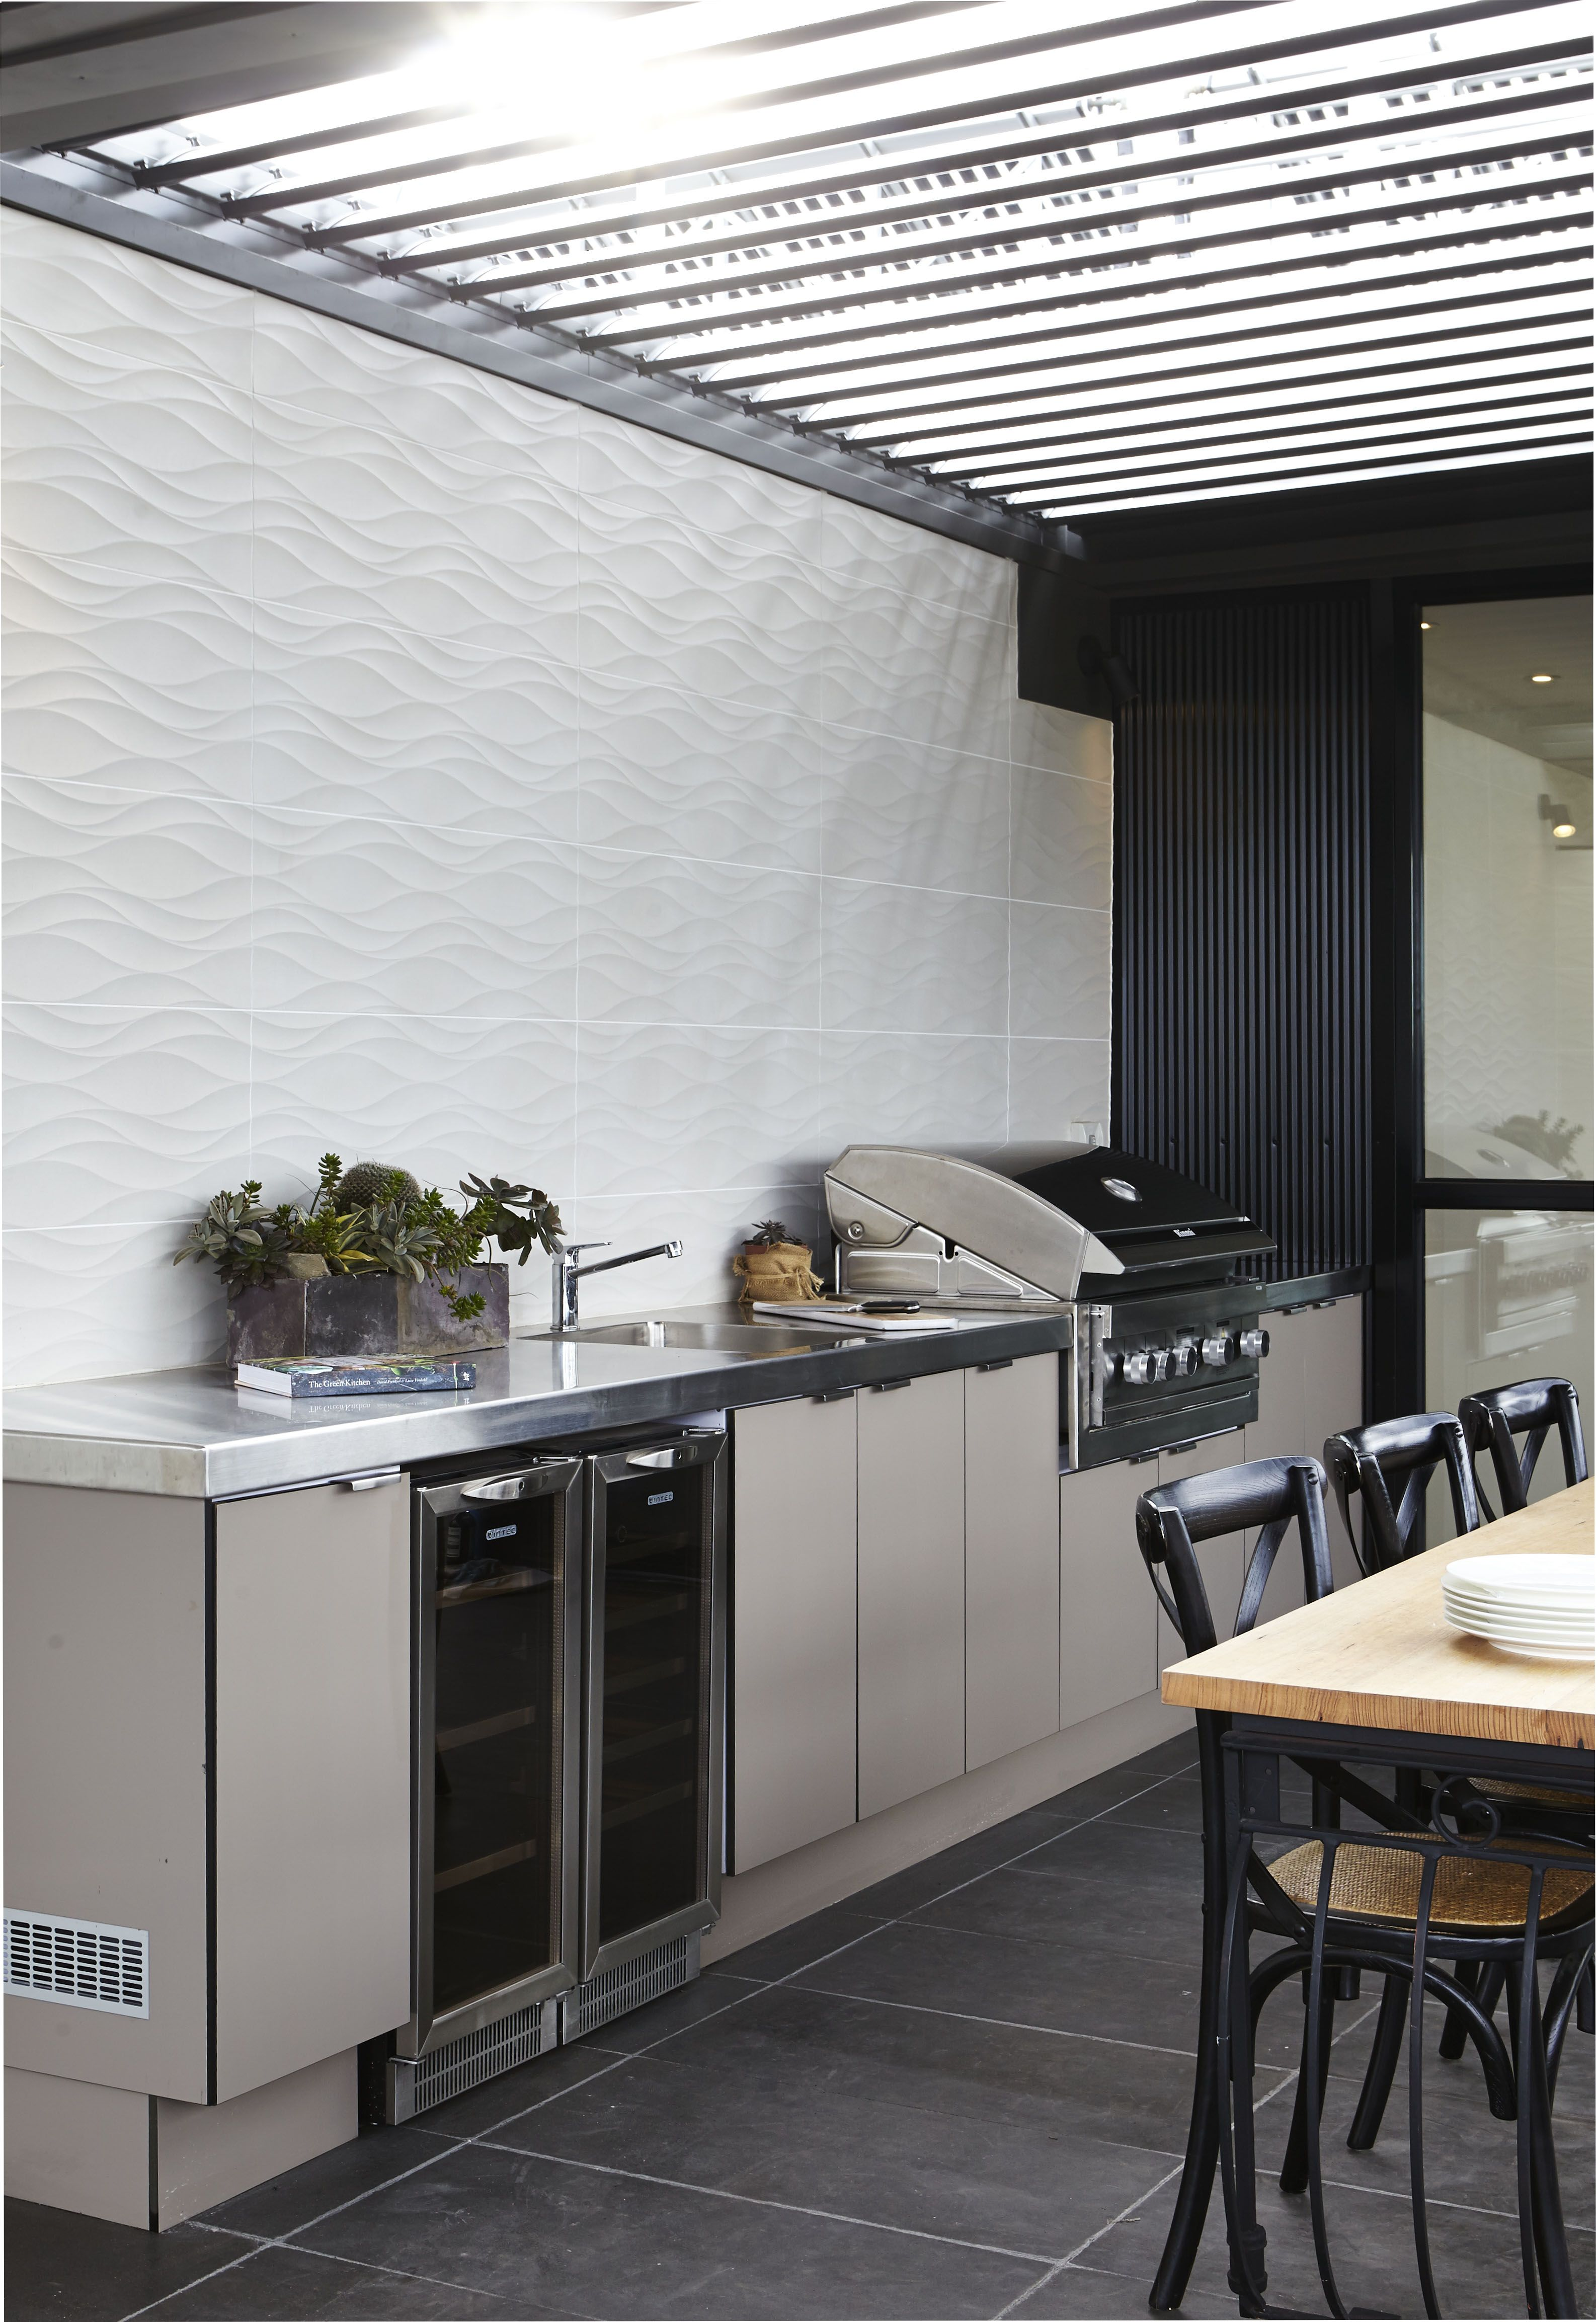 Laminex Alfresco Compact Laminate In Stone Was Used For